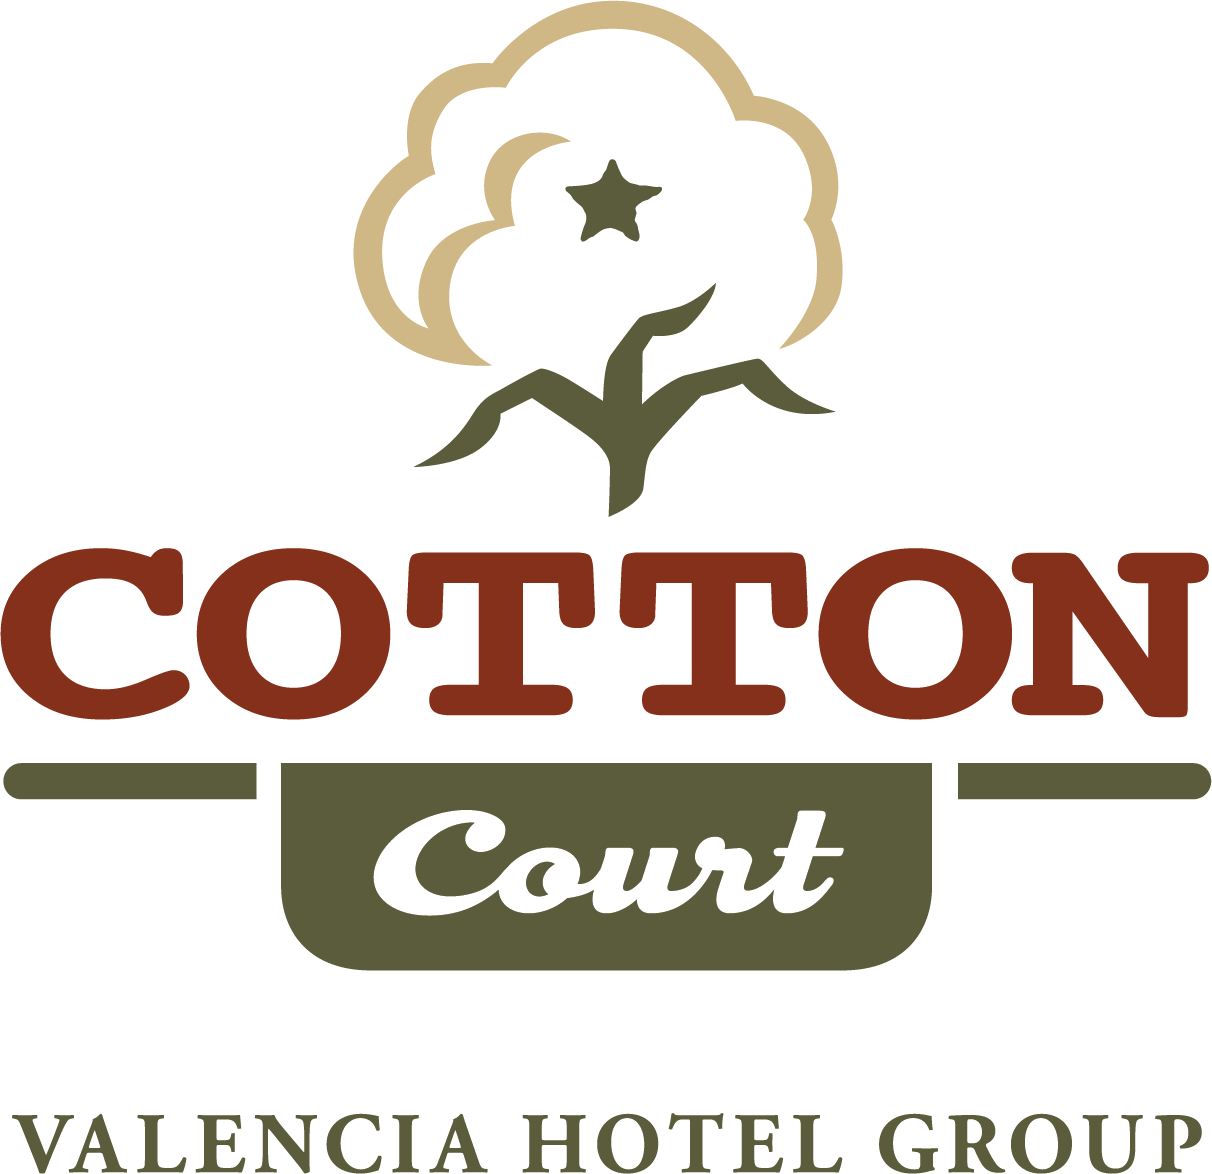 Cotton Court Hotel - 1610 Broadway, Lubbock, Texas 79401